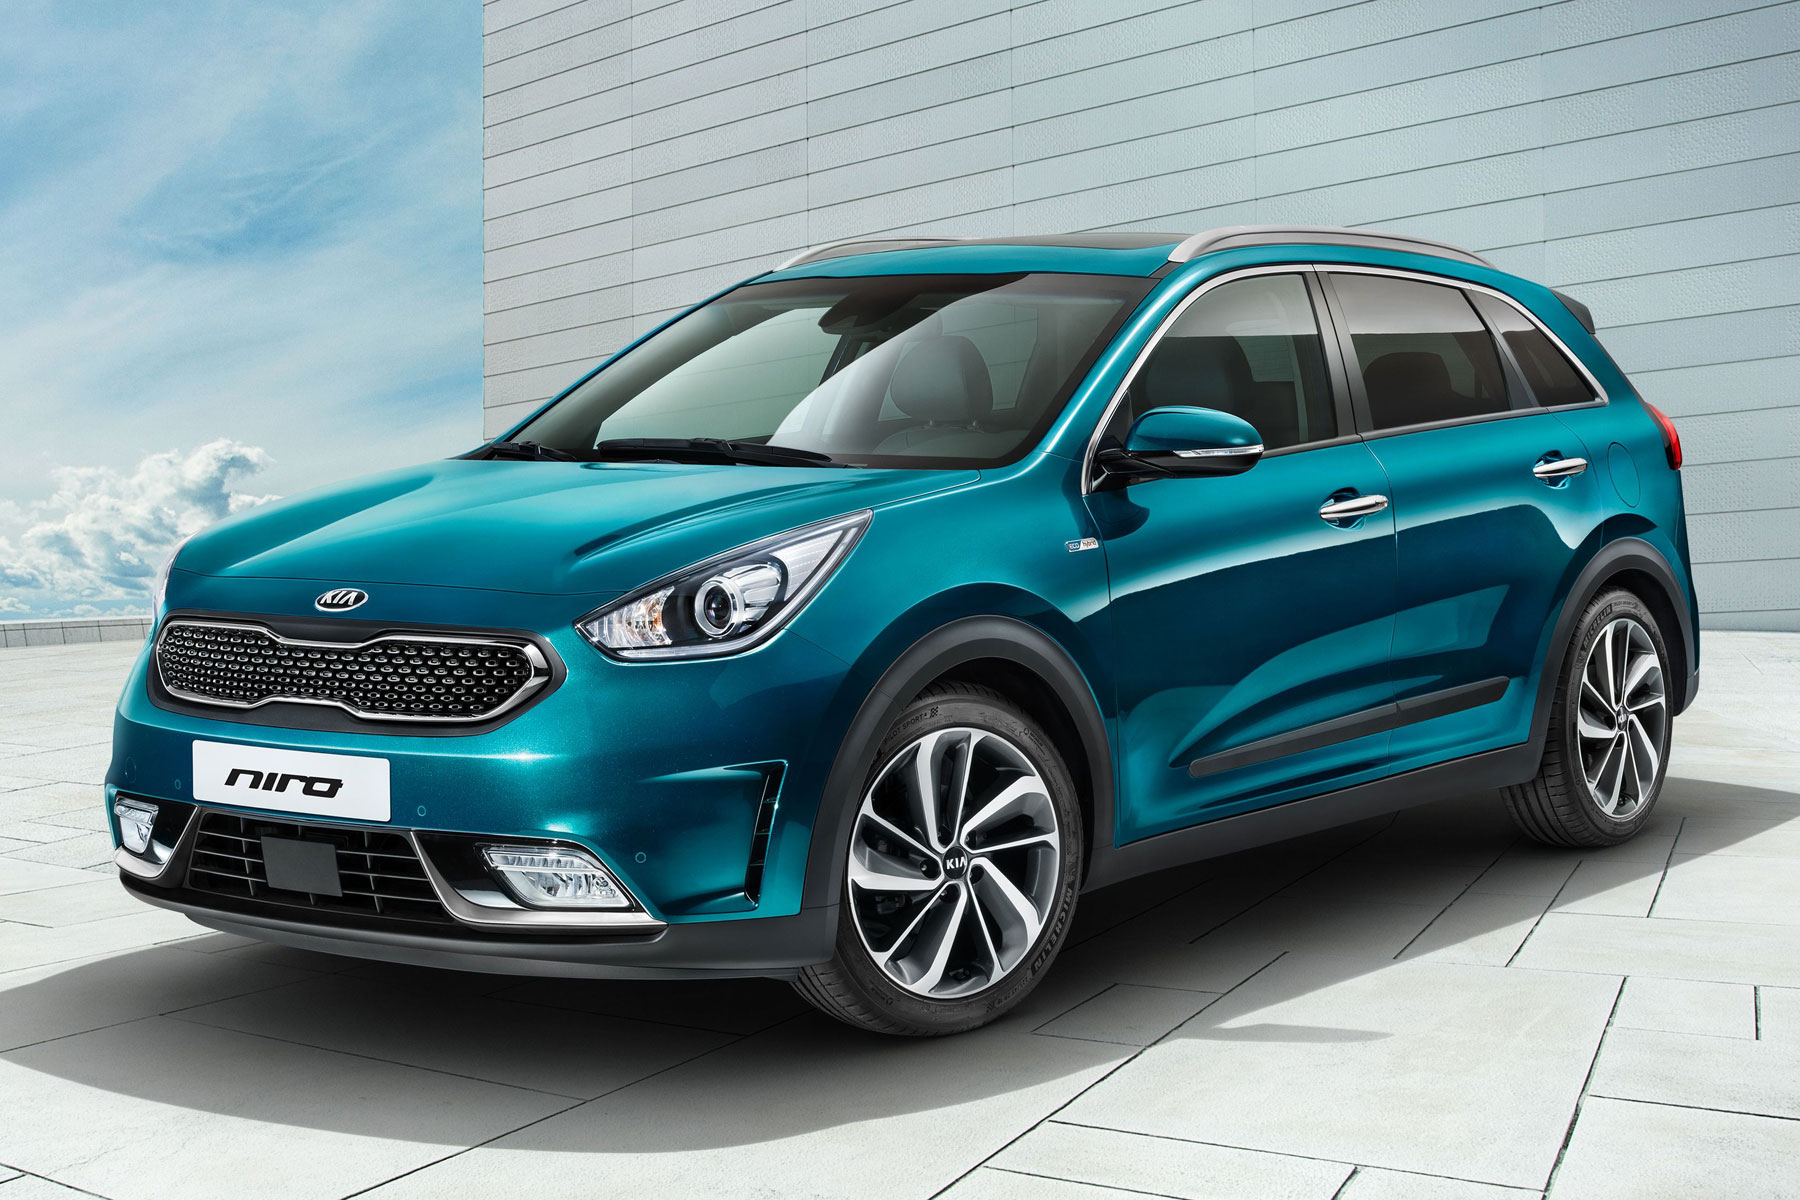 Kia Niro Heading To Geneva Is It The Crossover Make Hybrids Trendy